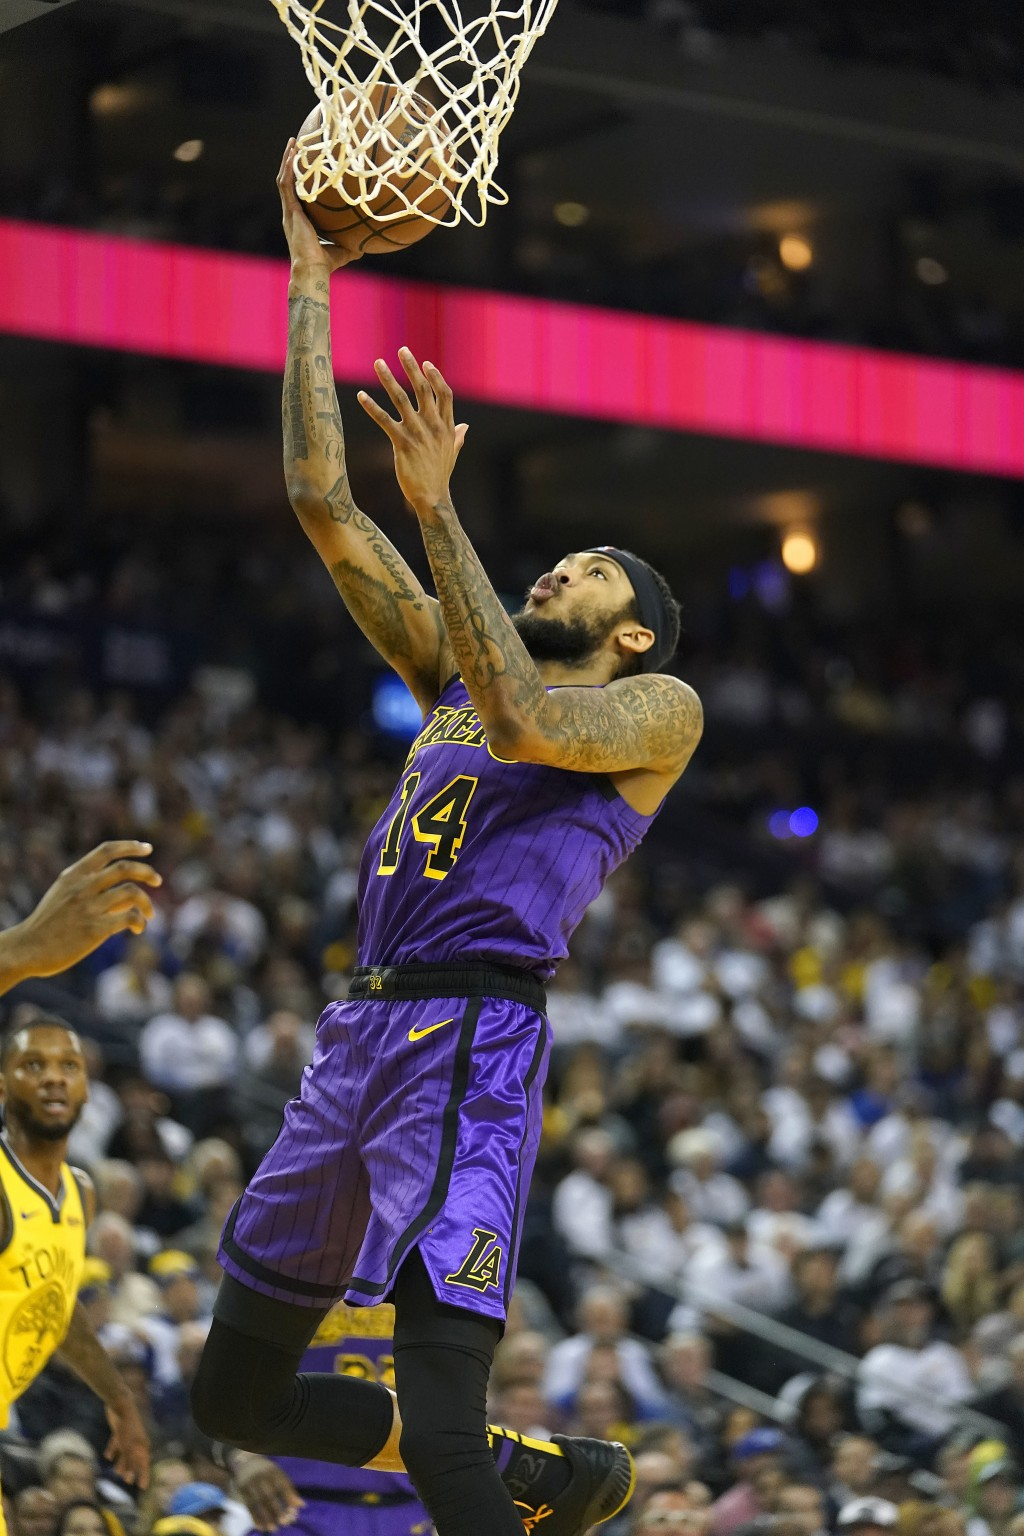 Los Angeles Lakers forward Brandon Ingram (14) drives to the basket against the Golden State Warriors during the first half of an NBA basketball game ...